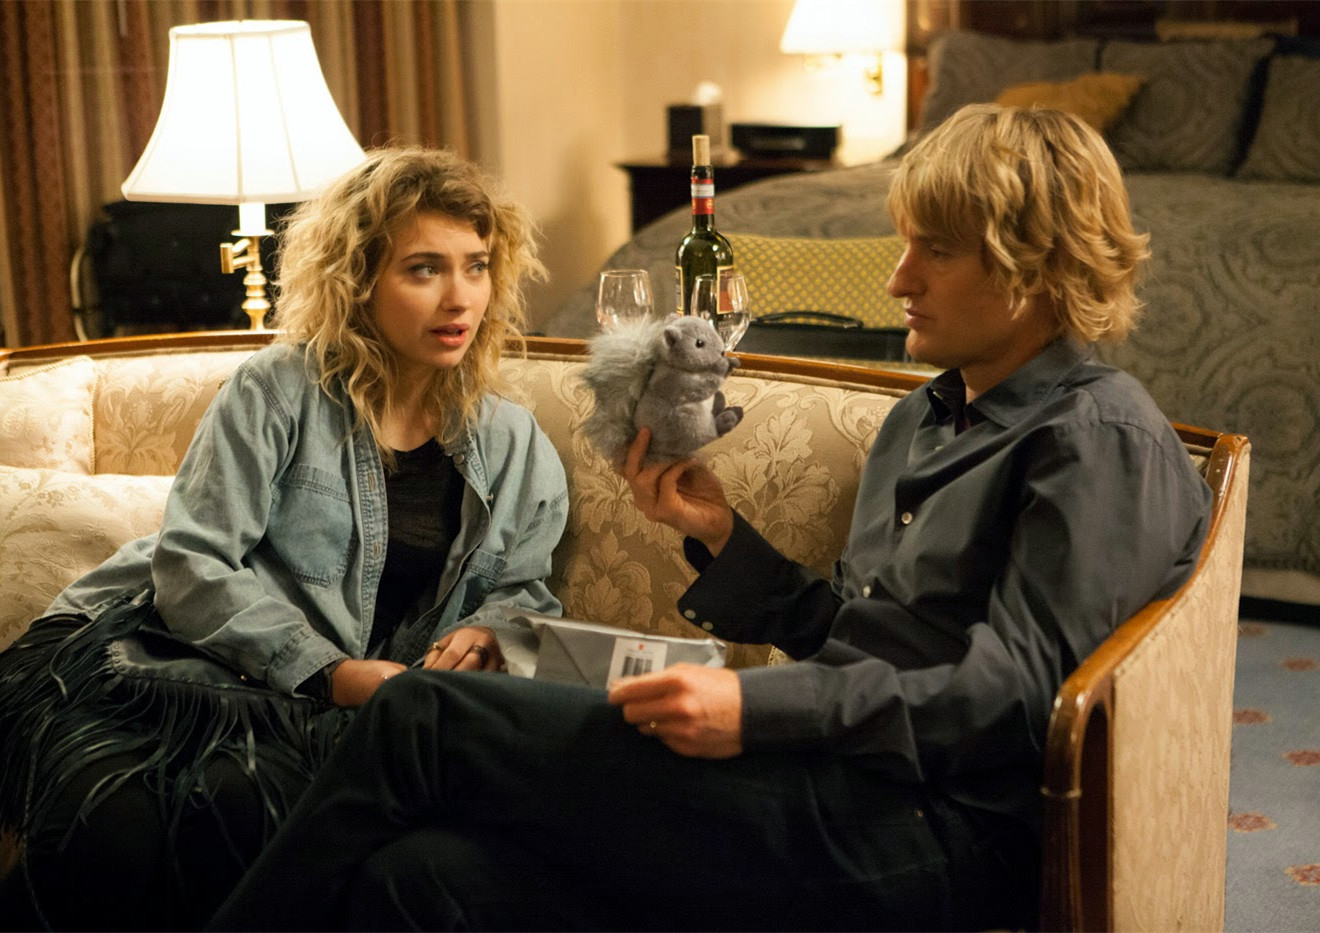 Sinopsis Film She's Funny That Way (Jennifer Aniston, Quentin Tarantino, Imogen Poots)